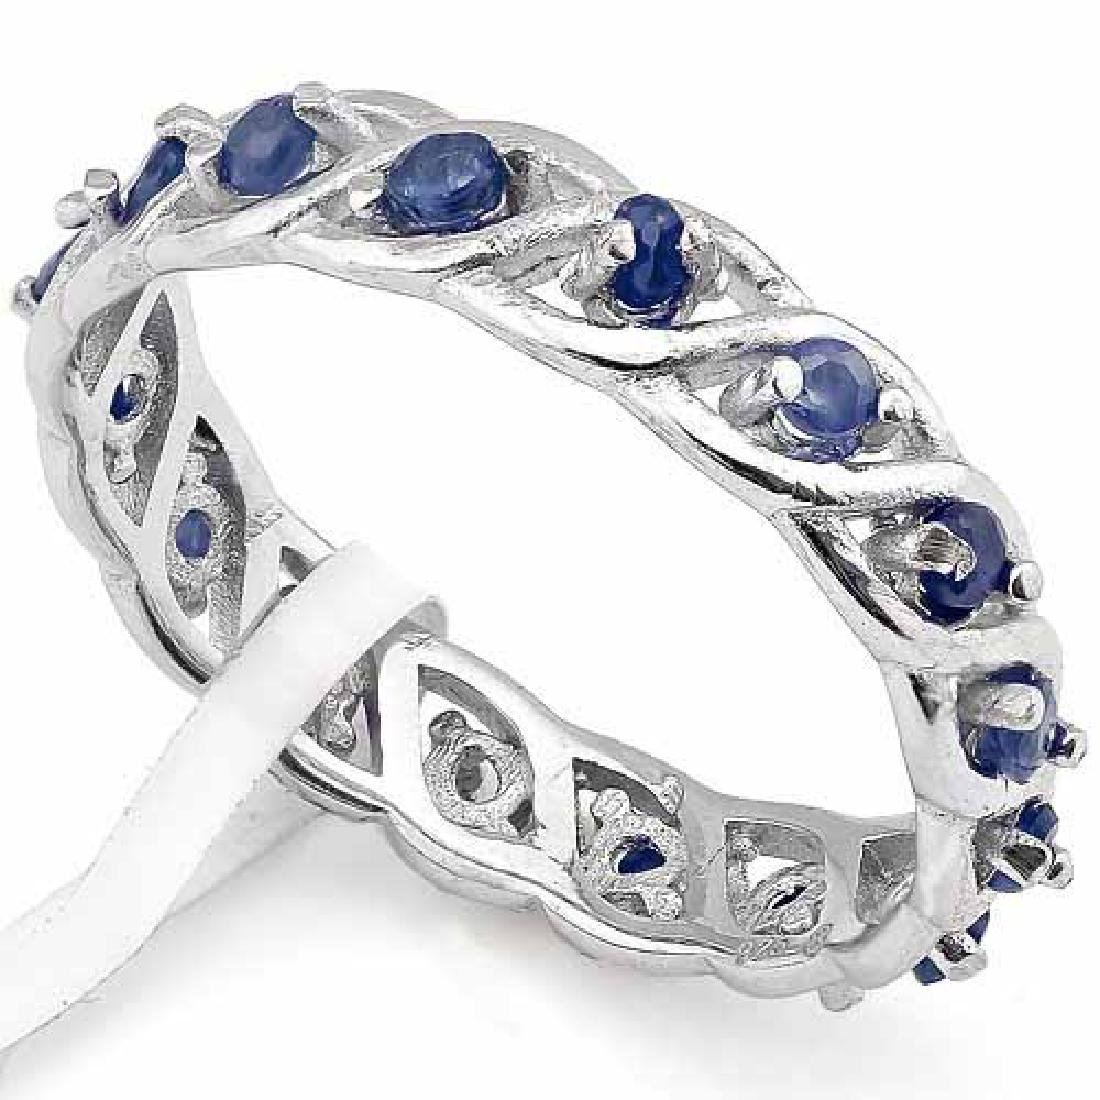 4/5 CARAT(16 PCS) SAPPHIRE 925 STERLING SILVER RING